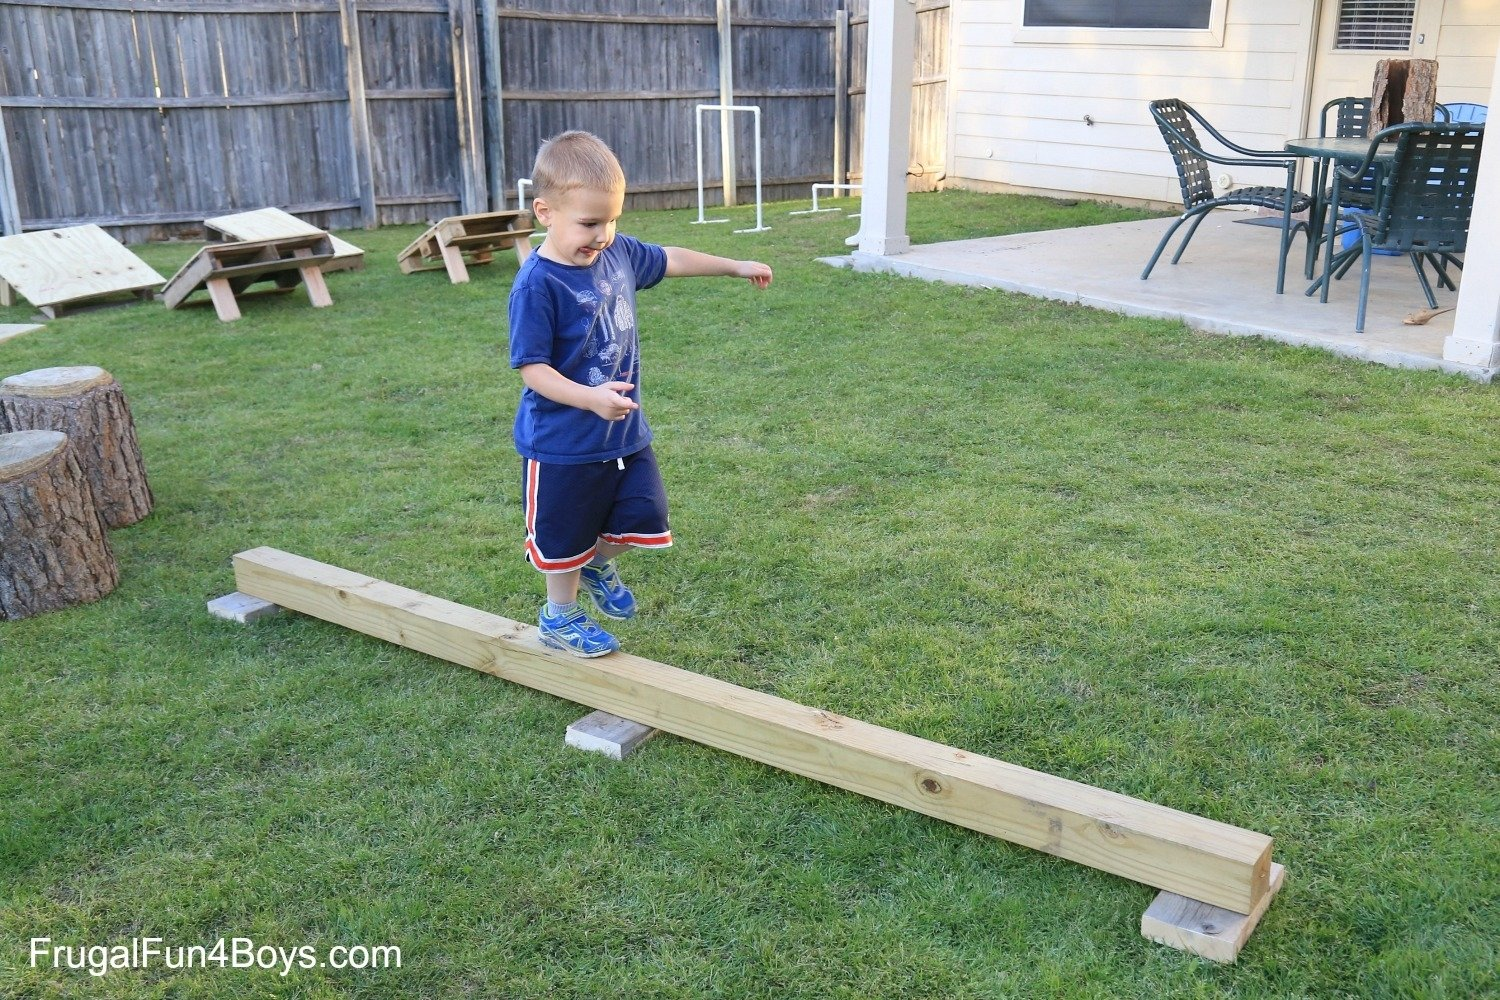 10 Fashionable Obstacle Course Ideas For Kids diy american ninja warrior backyard obstacle course 2 2021